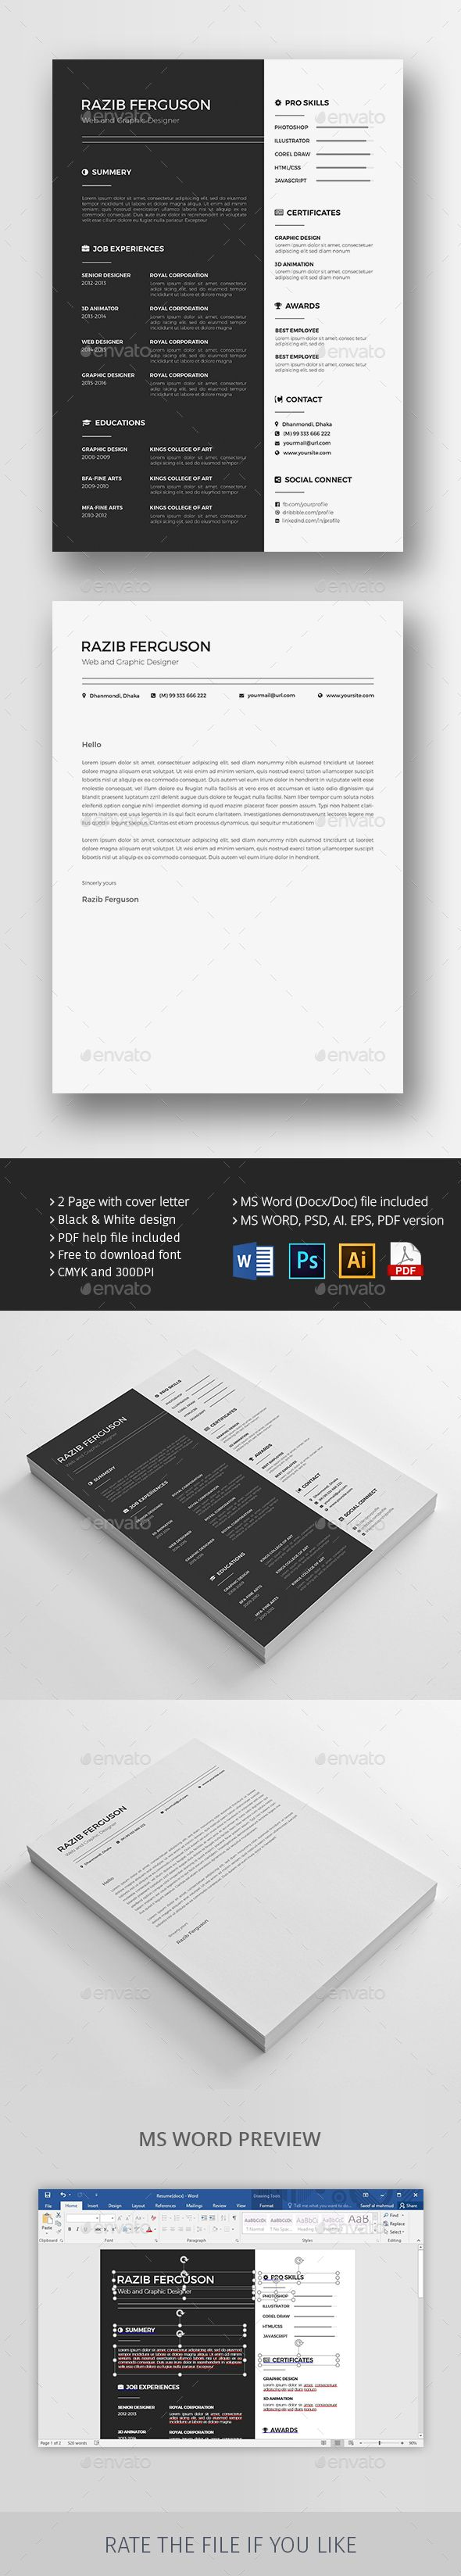 Awesome Resume Booklet 8 Pages Download Images - Professional Resume ...